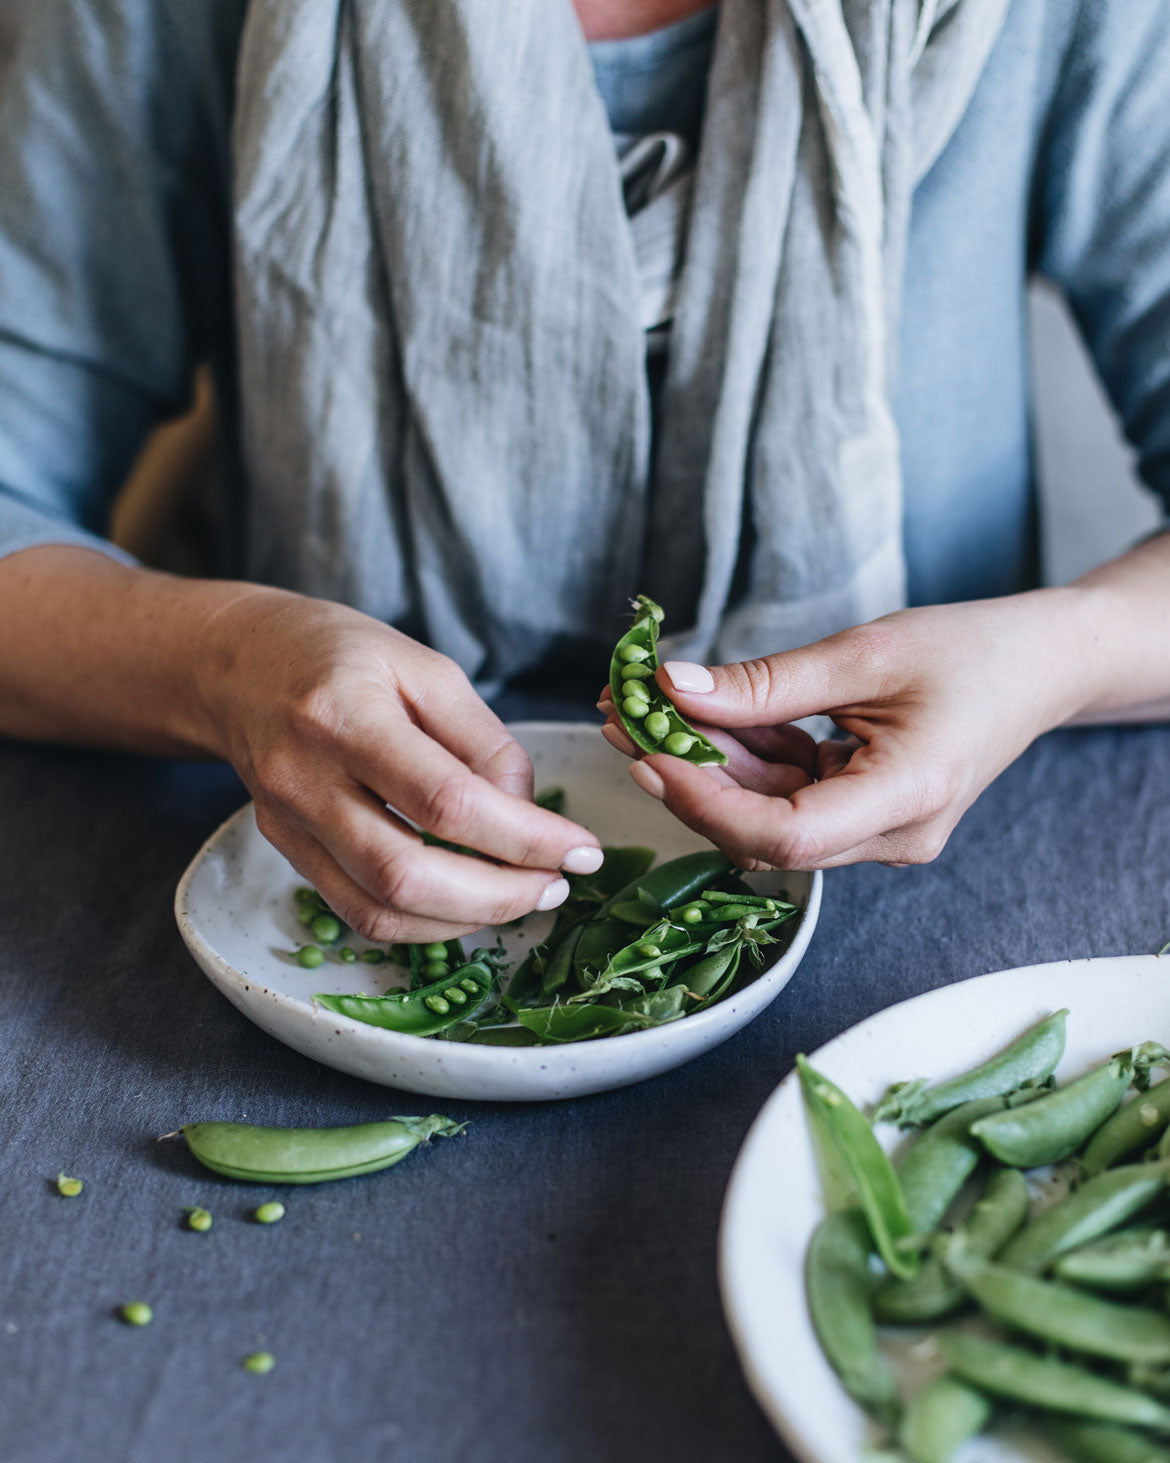 Shelling peas into a handmade bowl